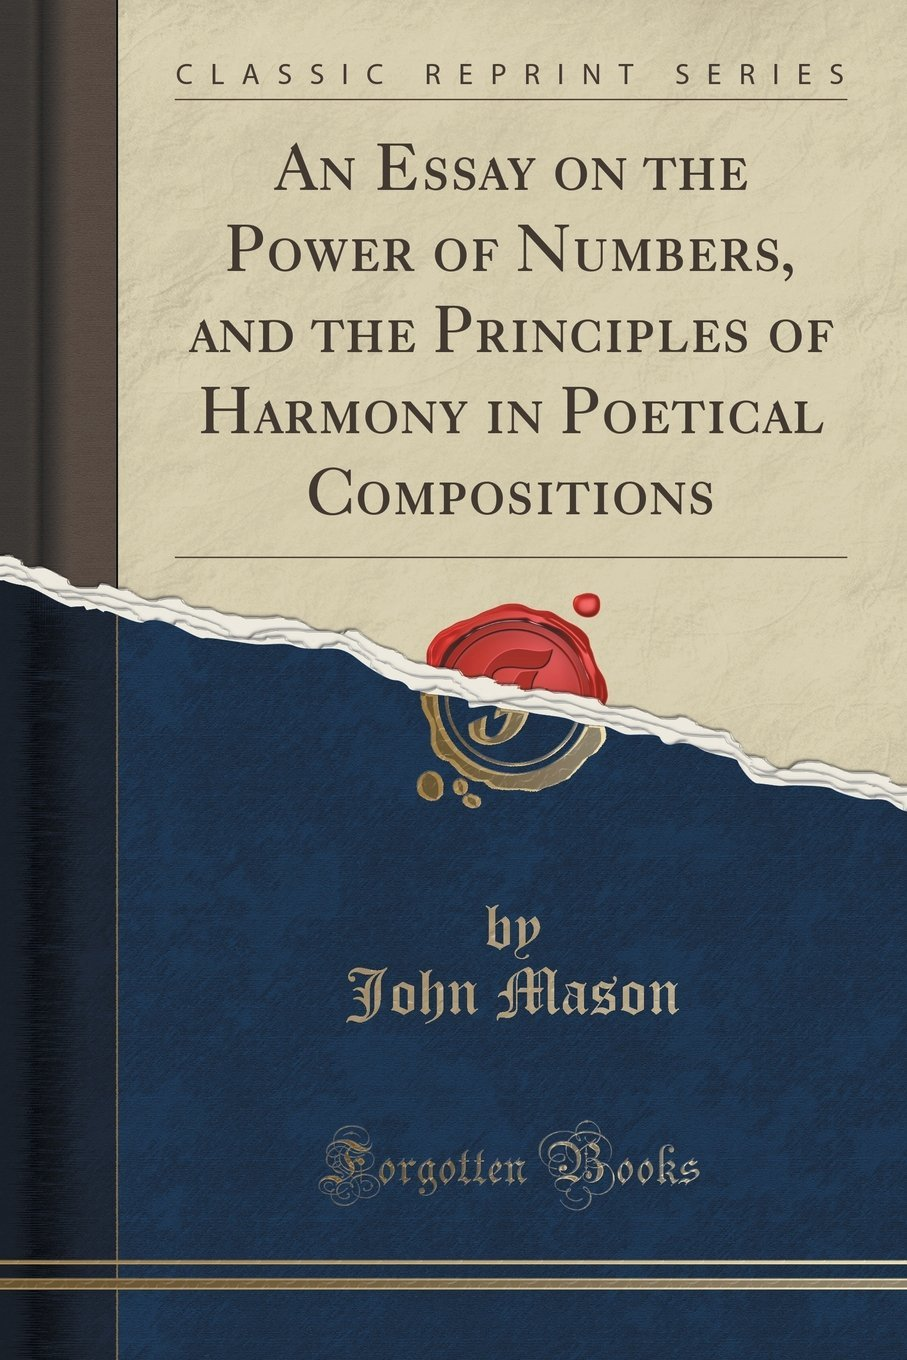 An Essay on the Power of Numbers, and the Principles of Harmony in Poetical Compositions